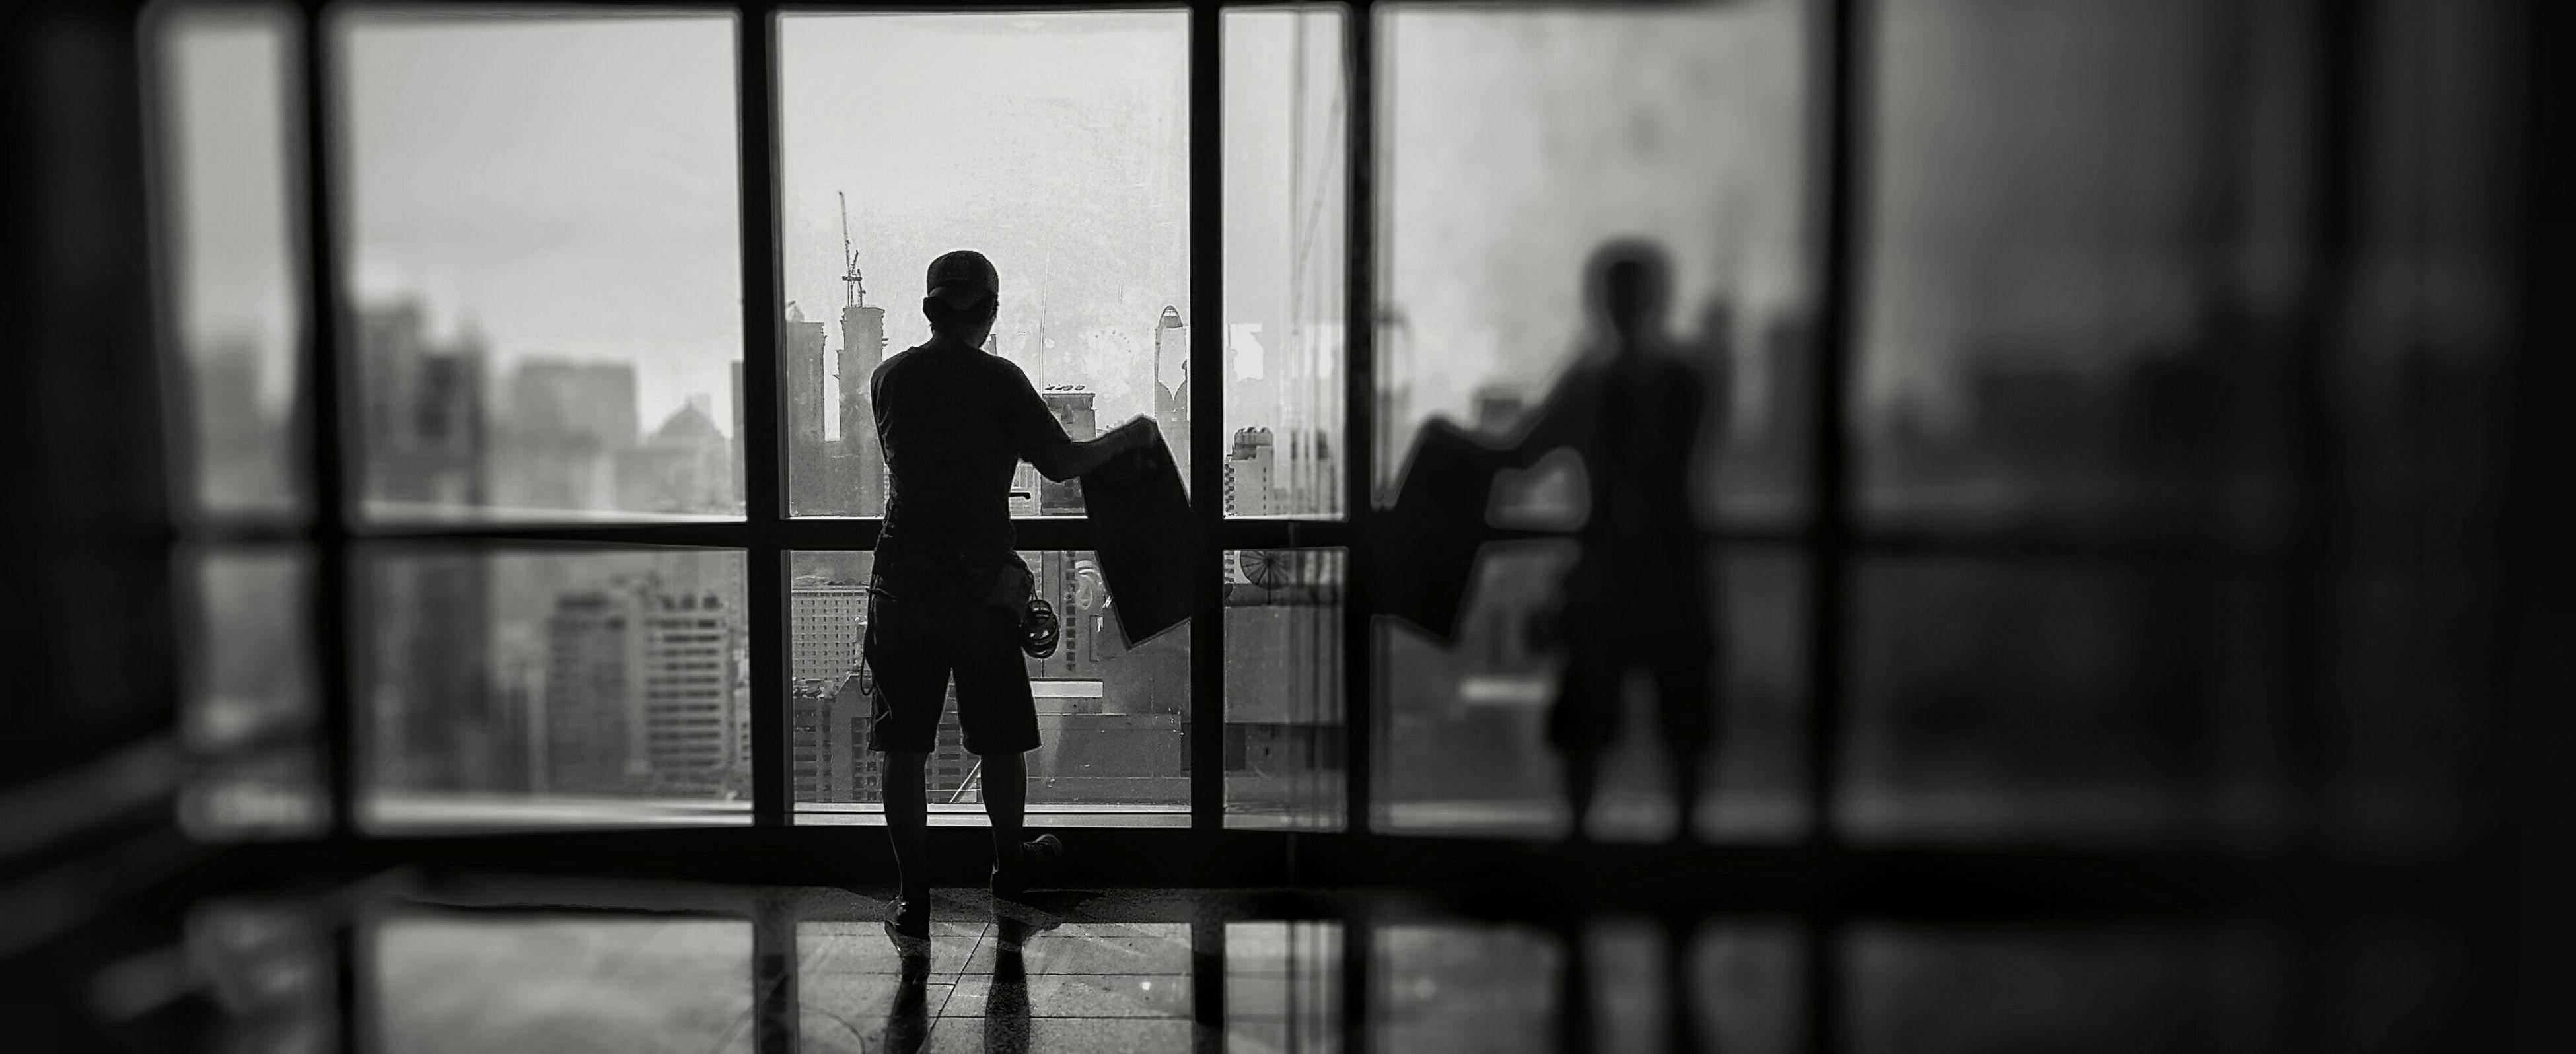 indoors, silhouette, men, lifestyles, window, glass - material, full length, walking, leisure activity, person, standing, rear view, transparent, selective focus, reflection, shadow, railing